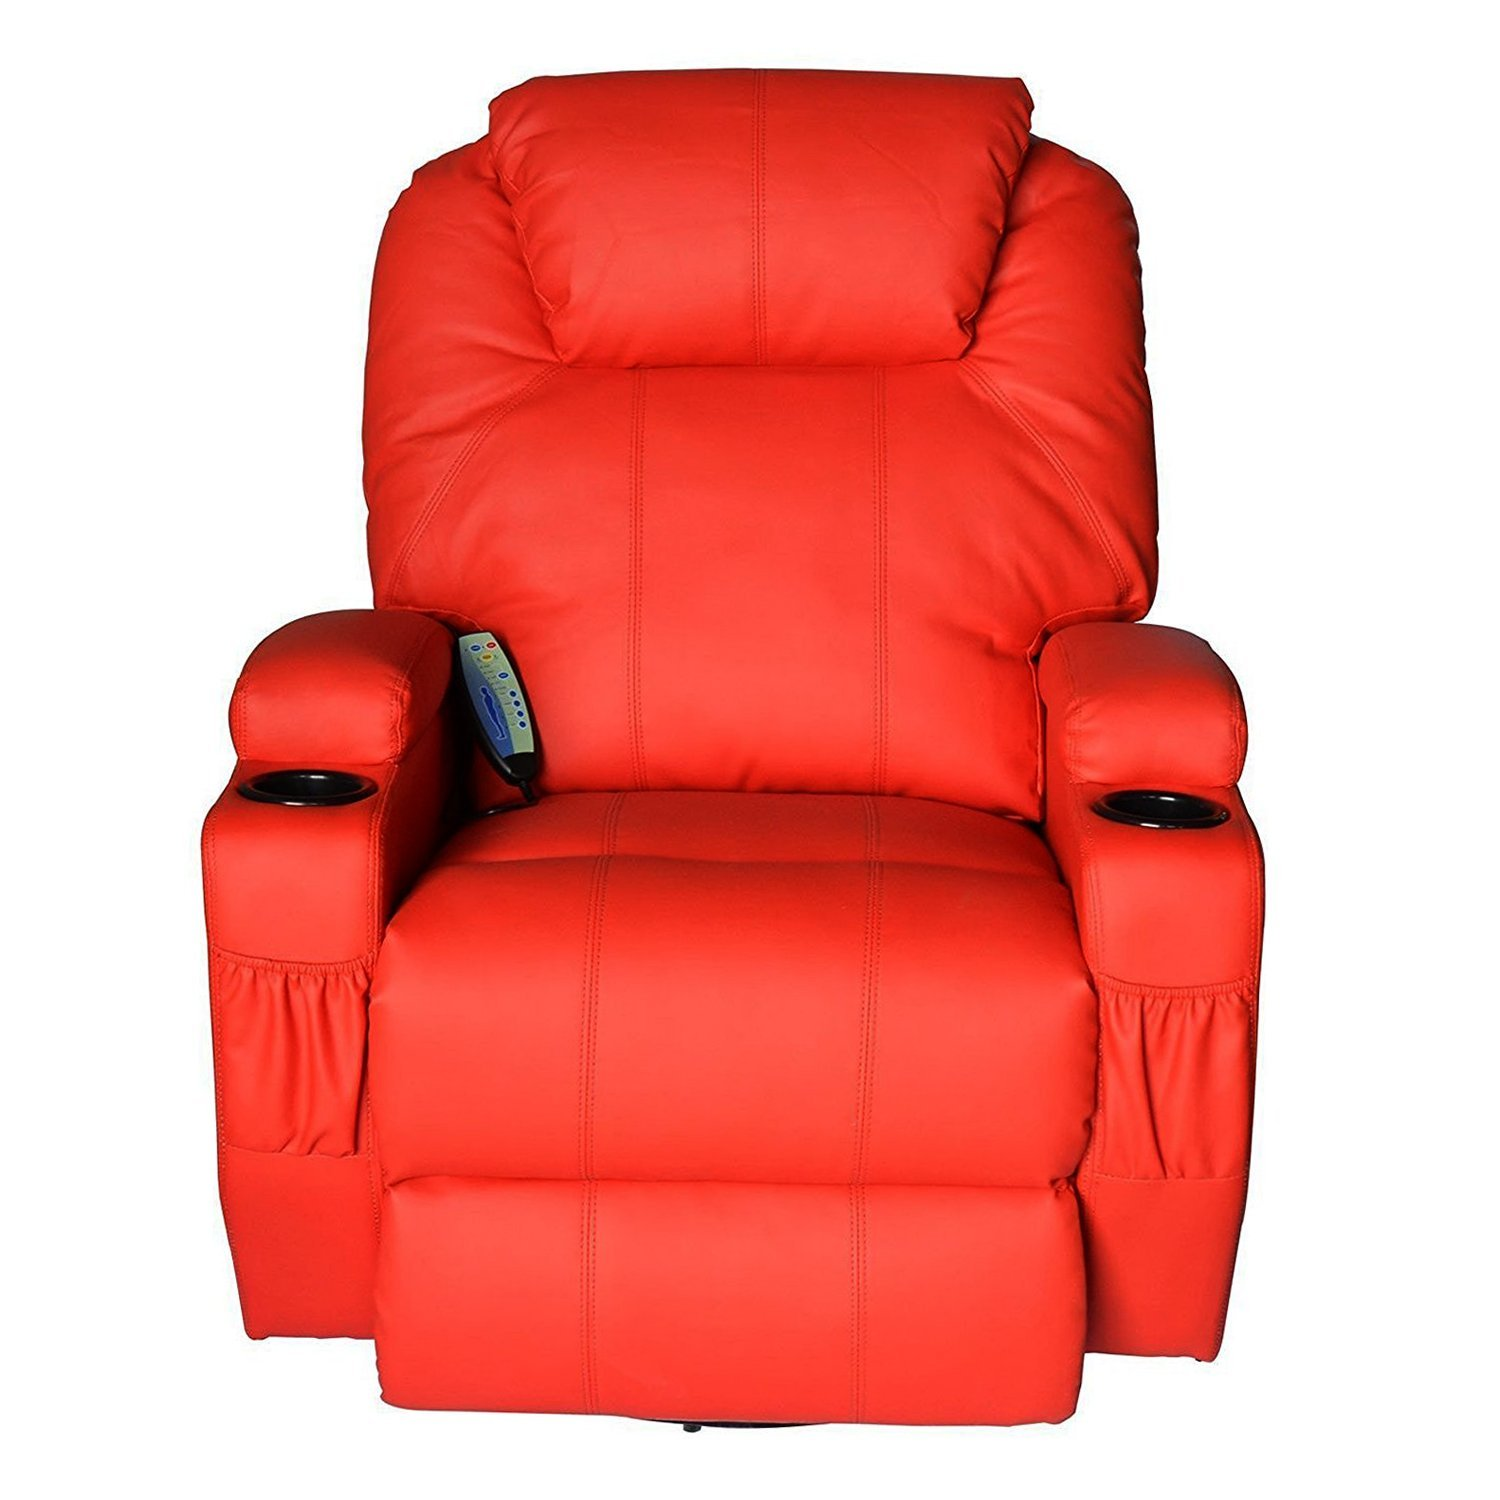 Oversized Swivel Chairs For Living Room - Decor Ideas